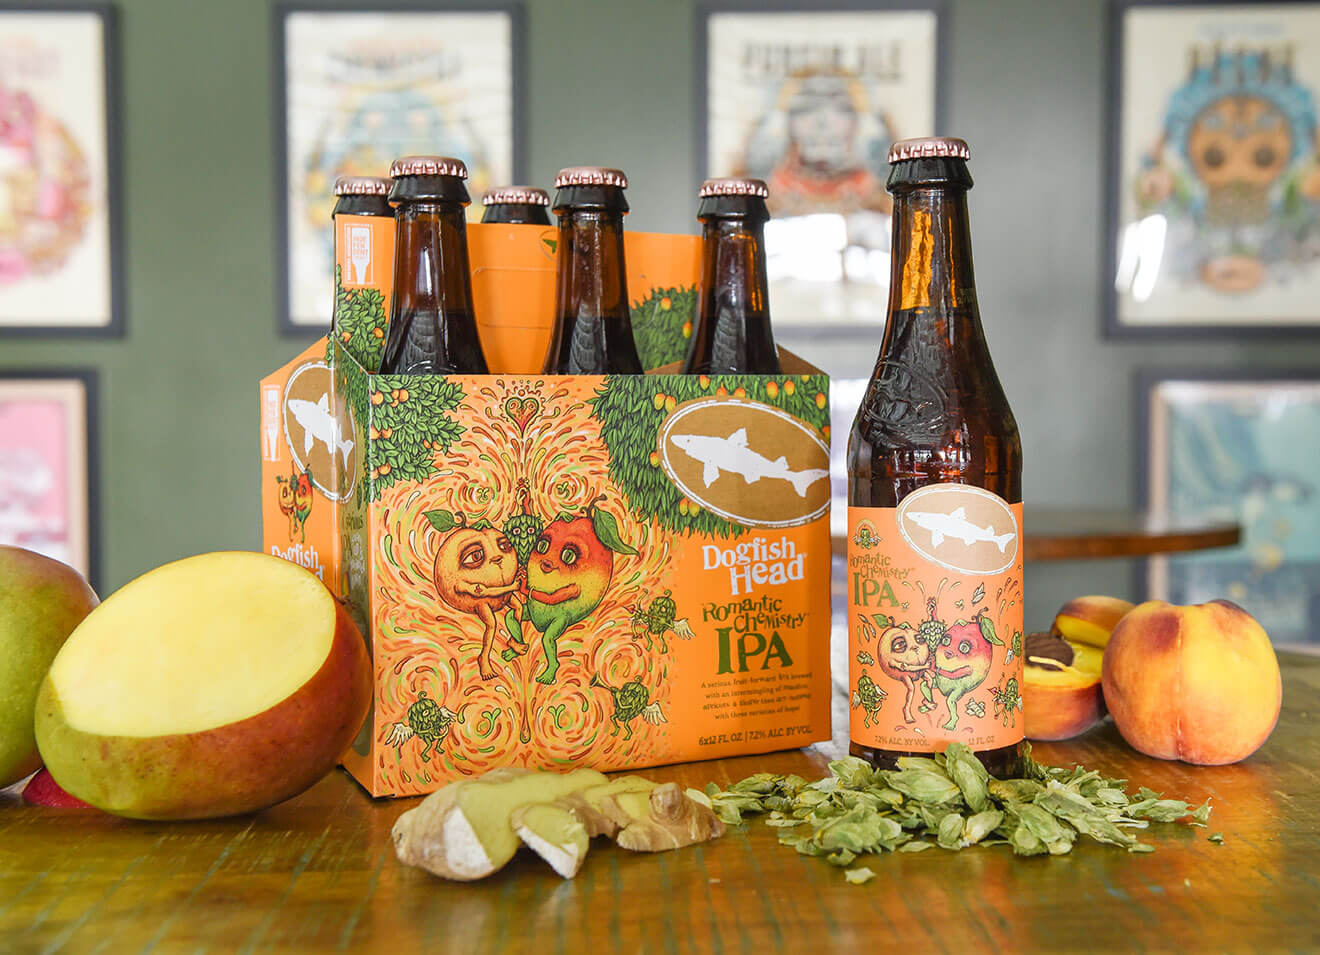 Dogfish Head Brewery Romantic Chemistry, packaging, bottle and fruit garnish